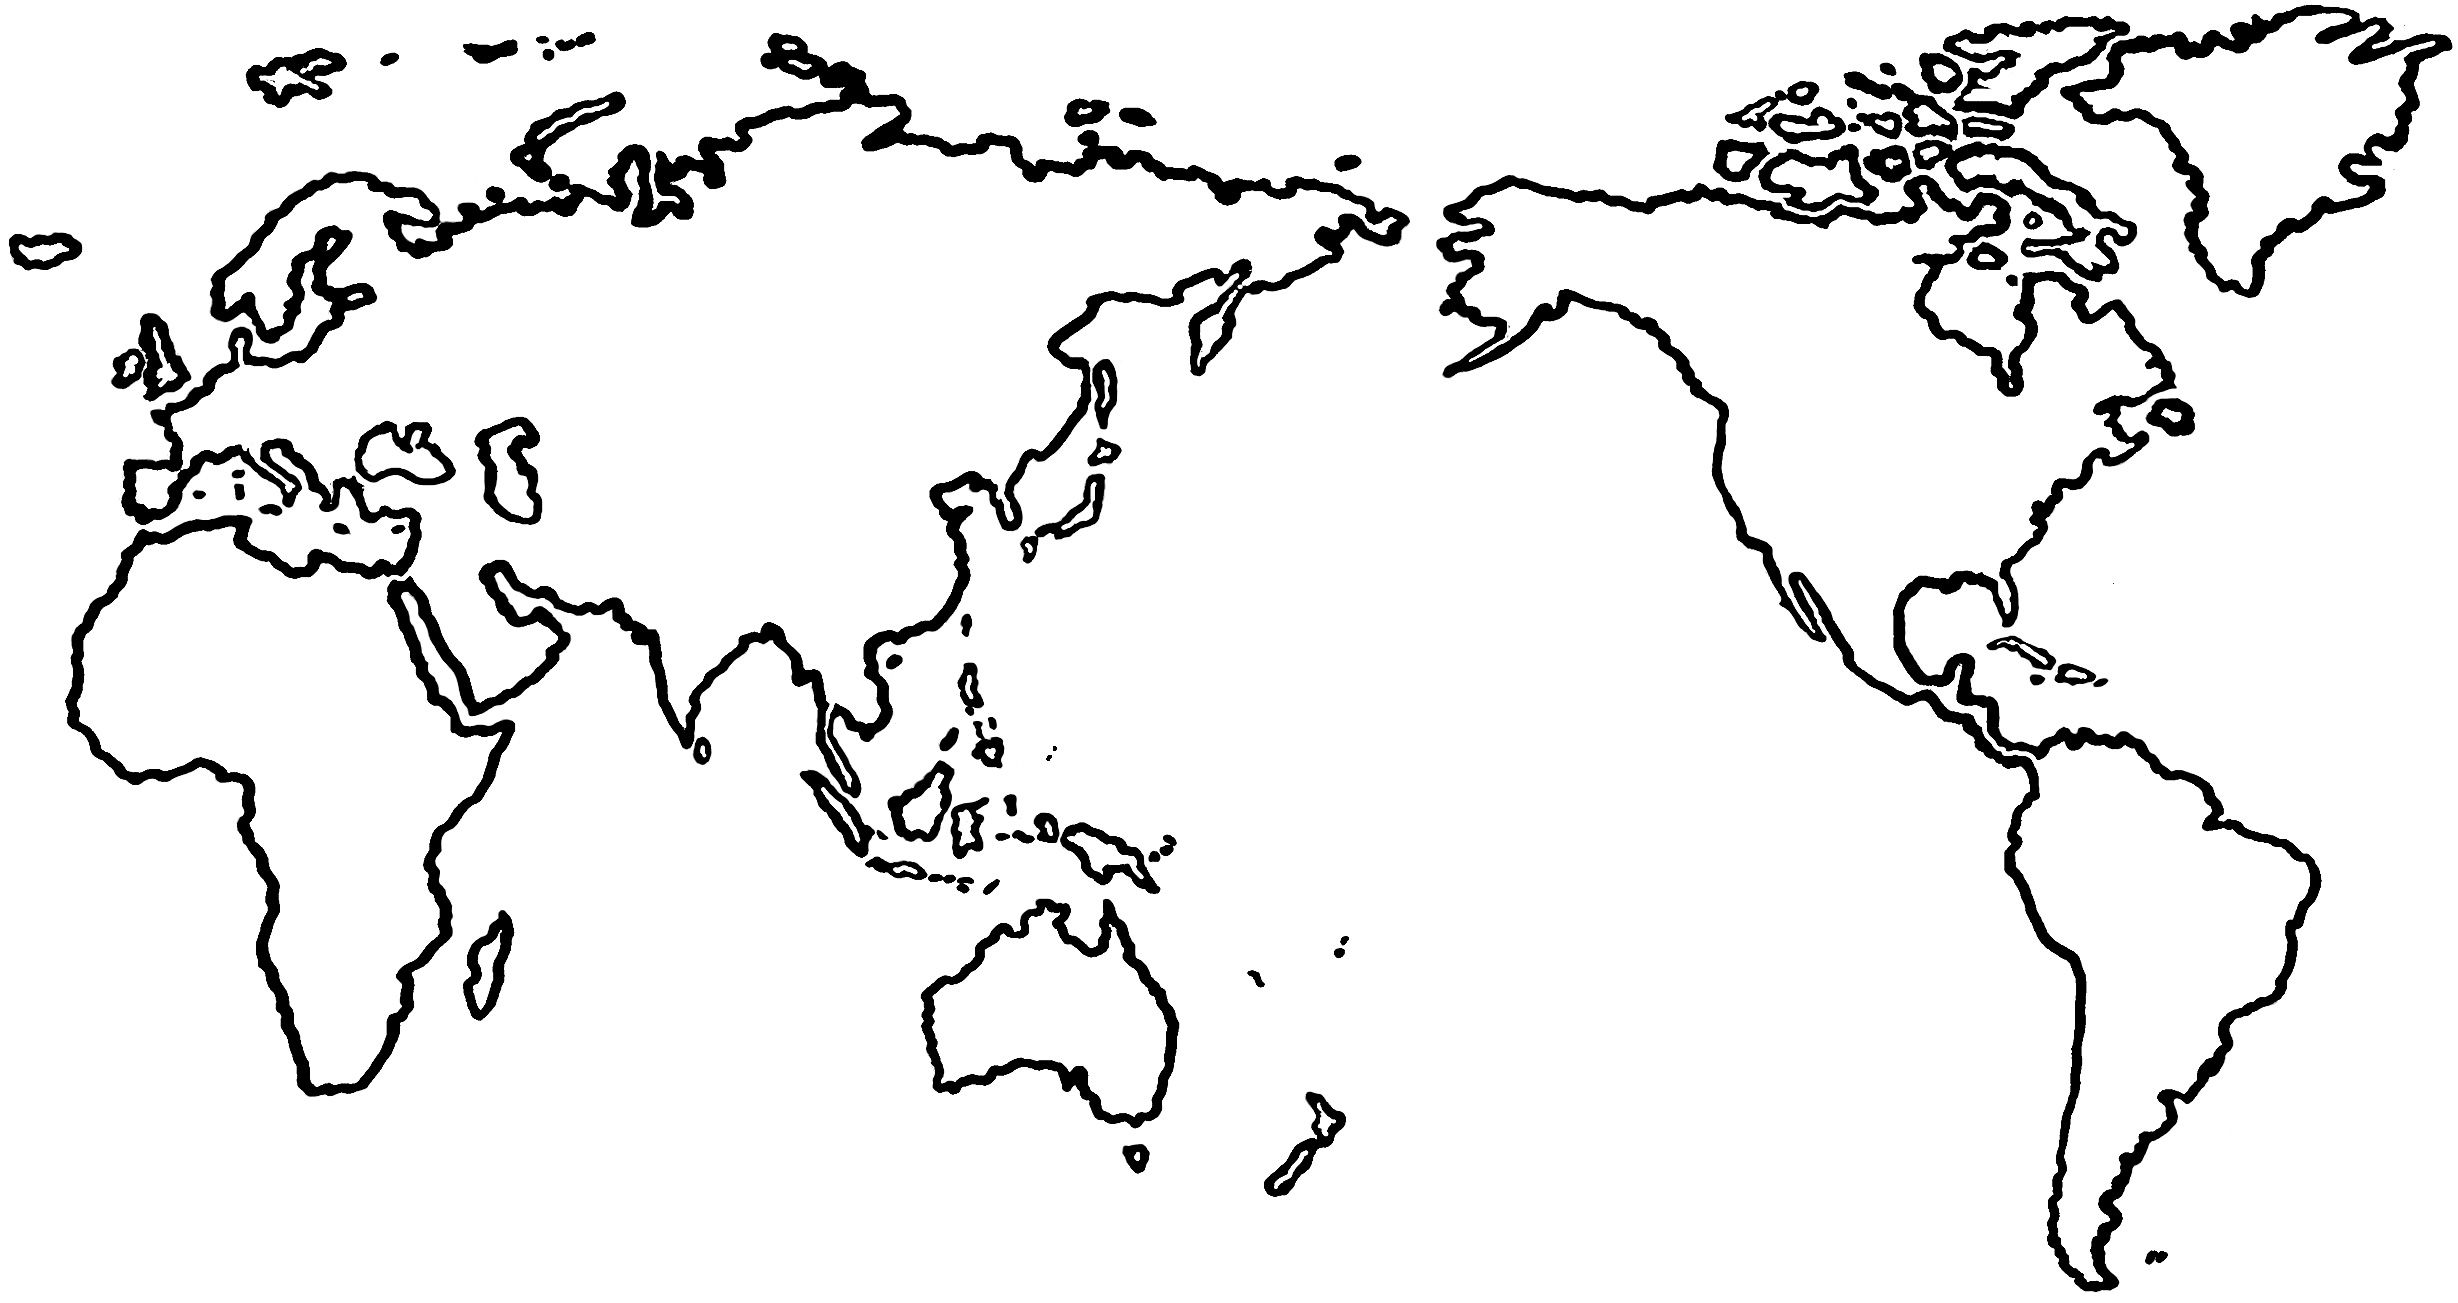 How to draw map of world open this world map template jpeg and how to draw map of world open this world map template jpeg and save it gumiabroncs Choice Image